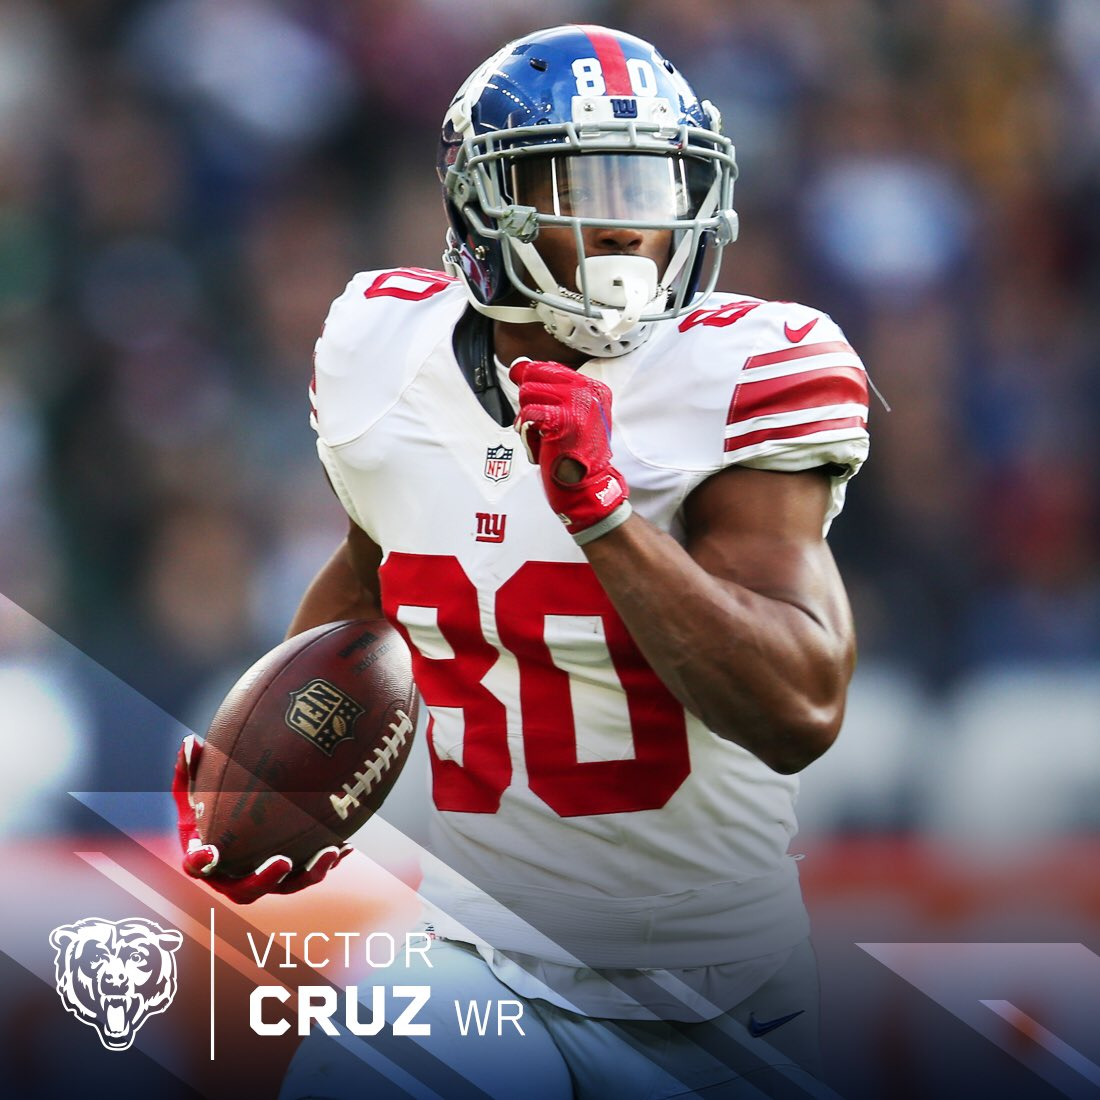 We have agreed to terms with WR Victor Cruz on a one-year contract.Welcome to Chicago, @TeamVic! 🐻⬇️